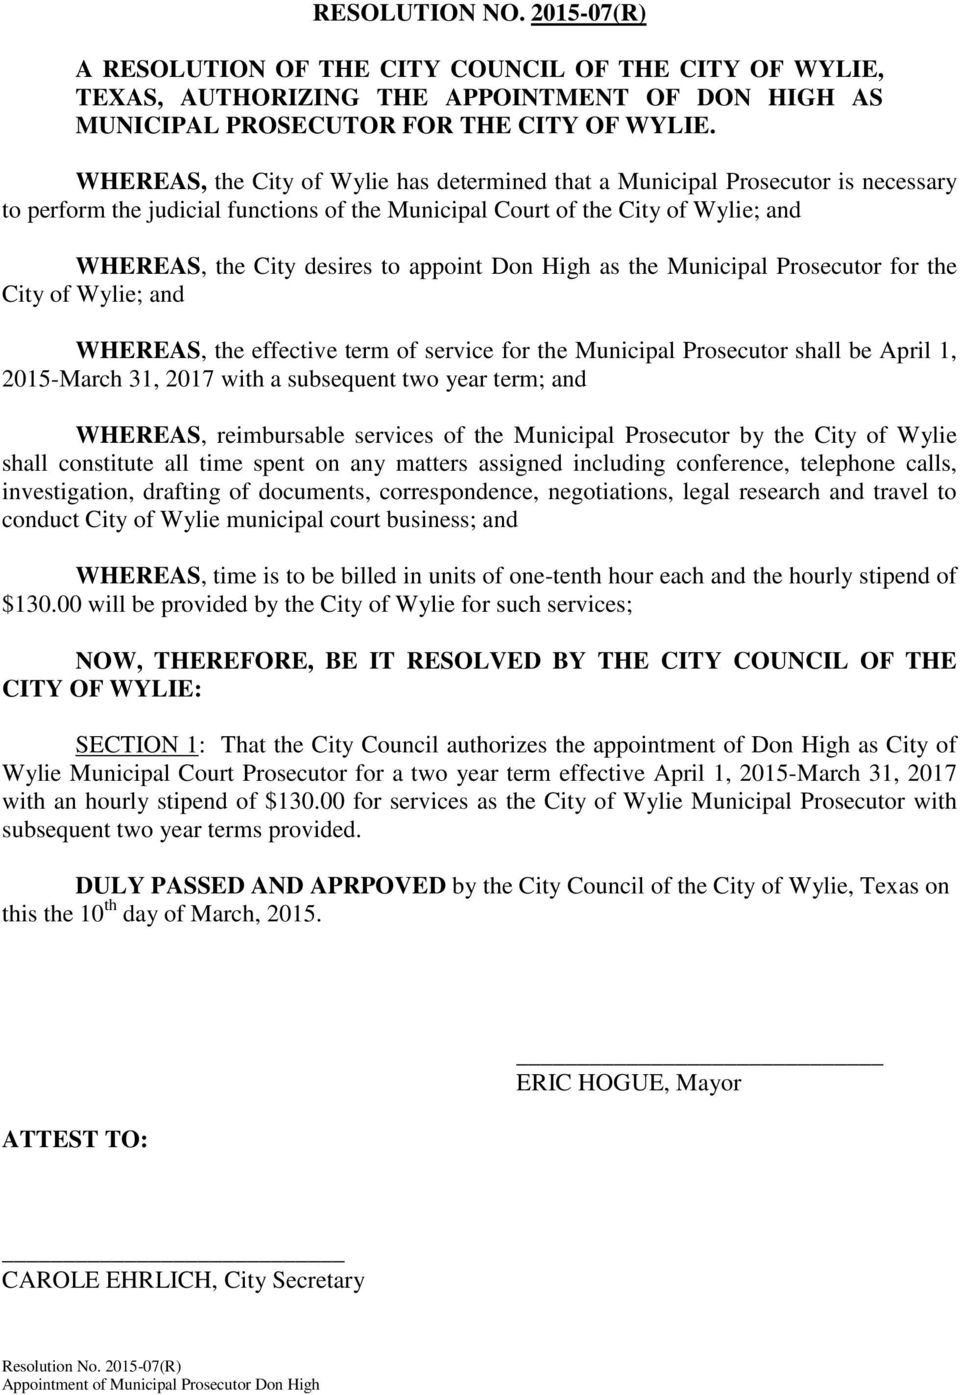 appoint Don High as the Municipal Prosecutor for the City of Wylie; and WHEREAS, the effective term of service for the Municipal Prosecutor shall be April 1, 2015-March 31, 2017 with a subsequent two